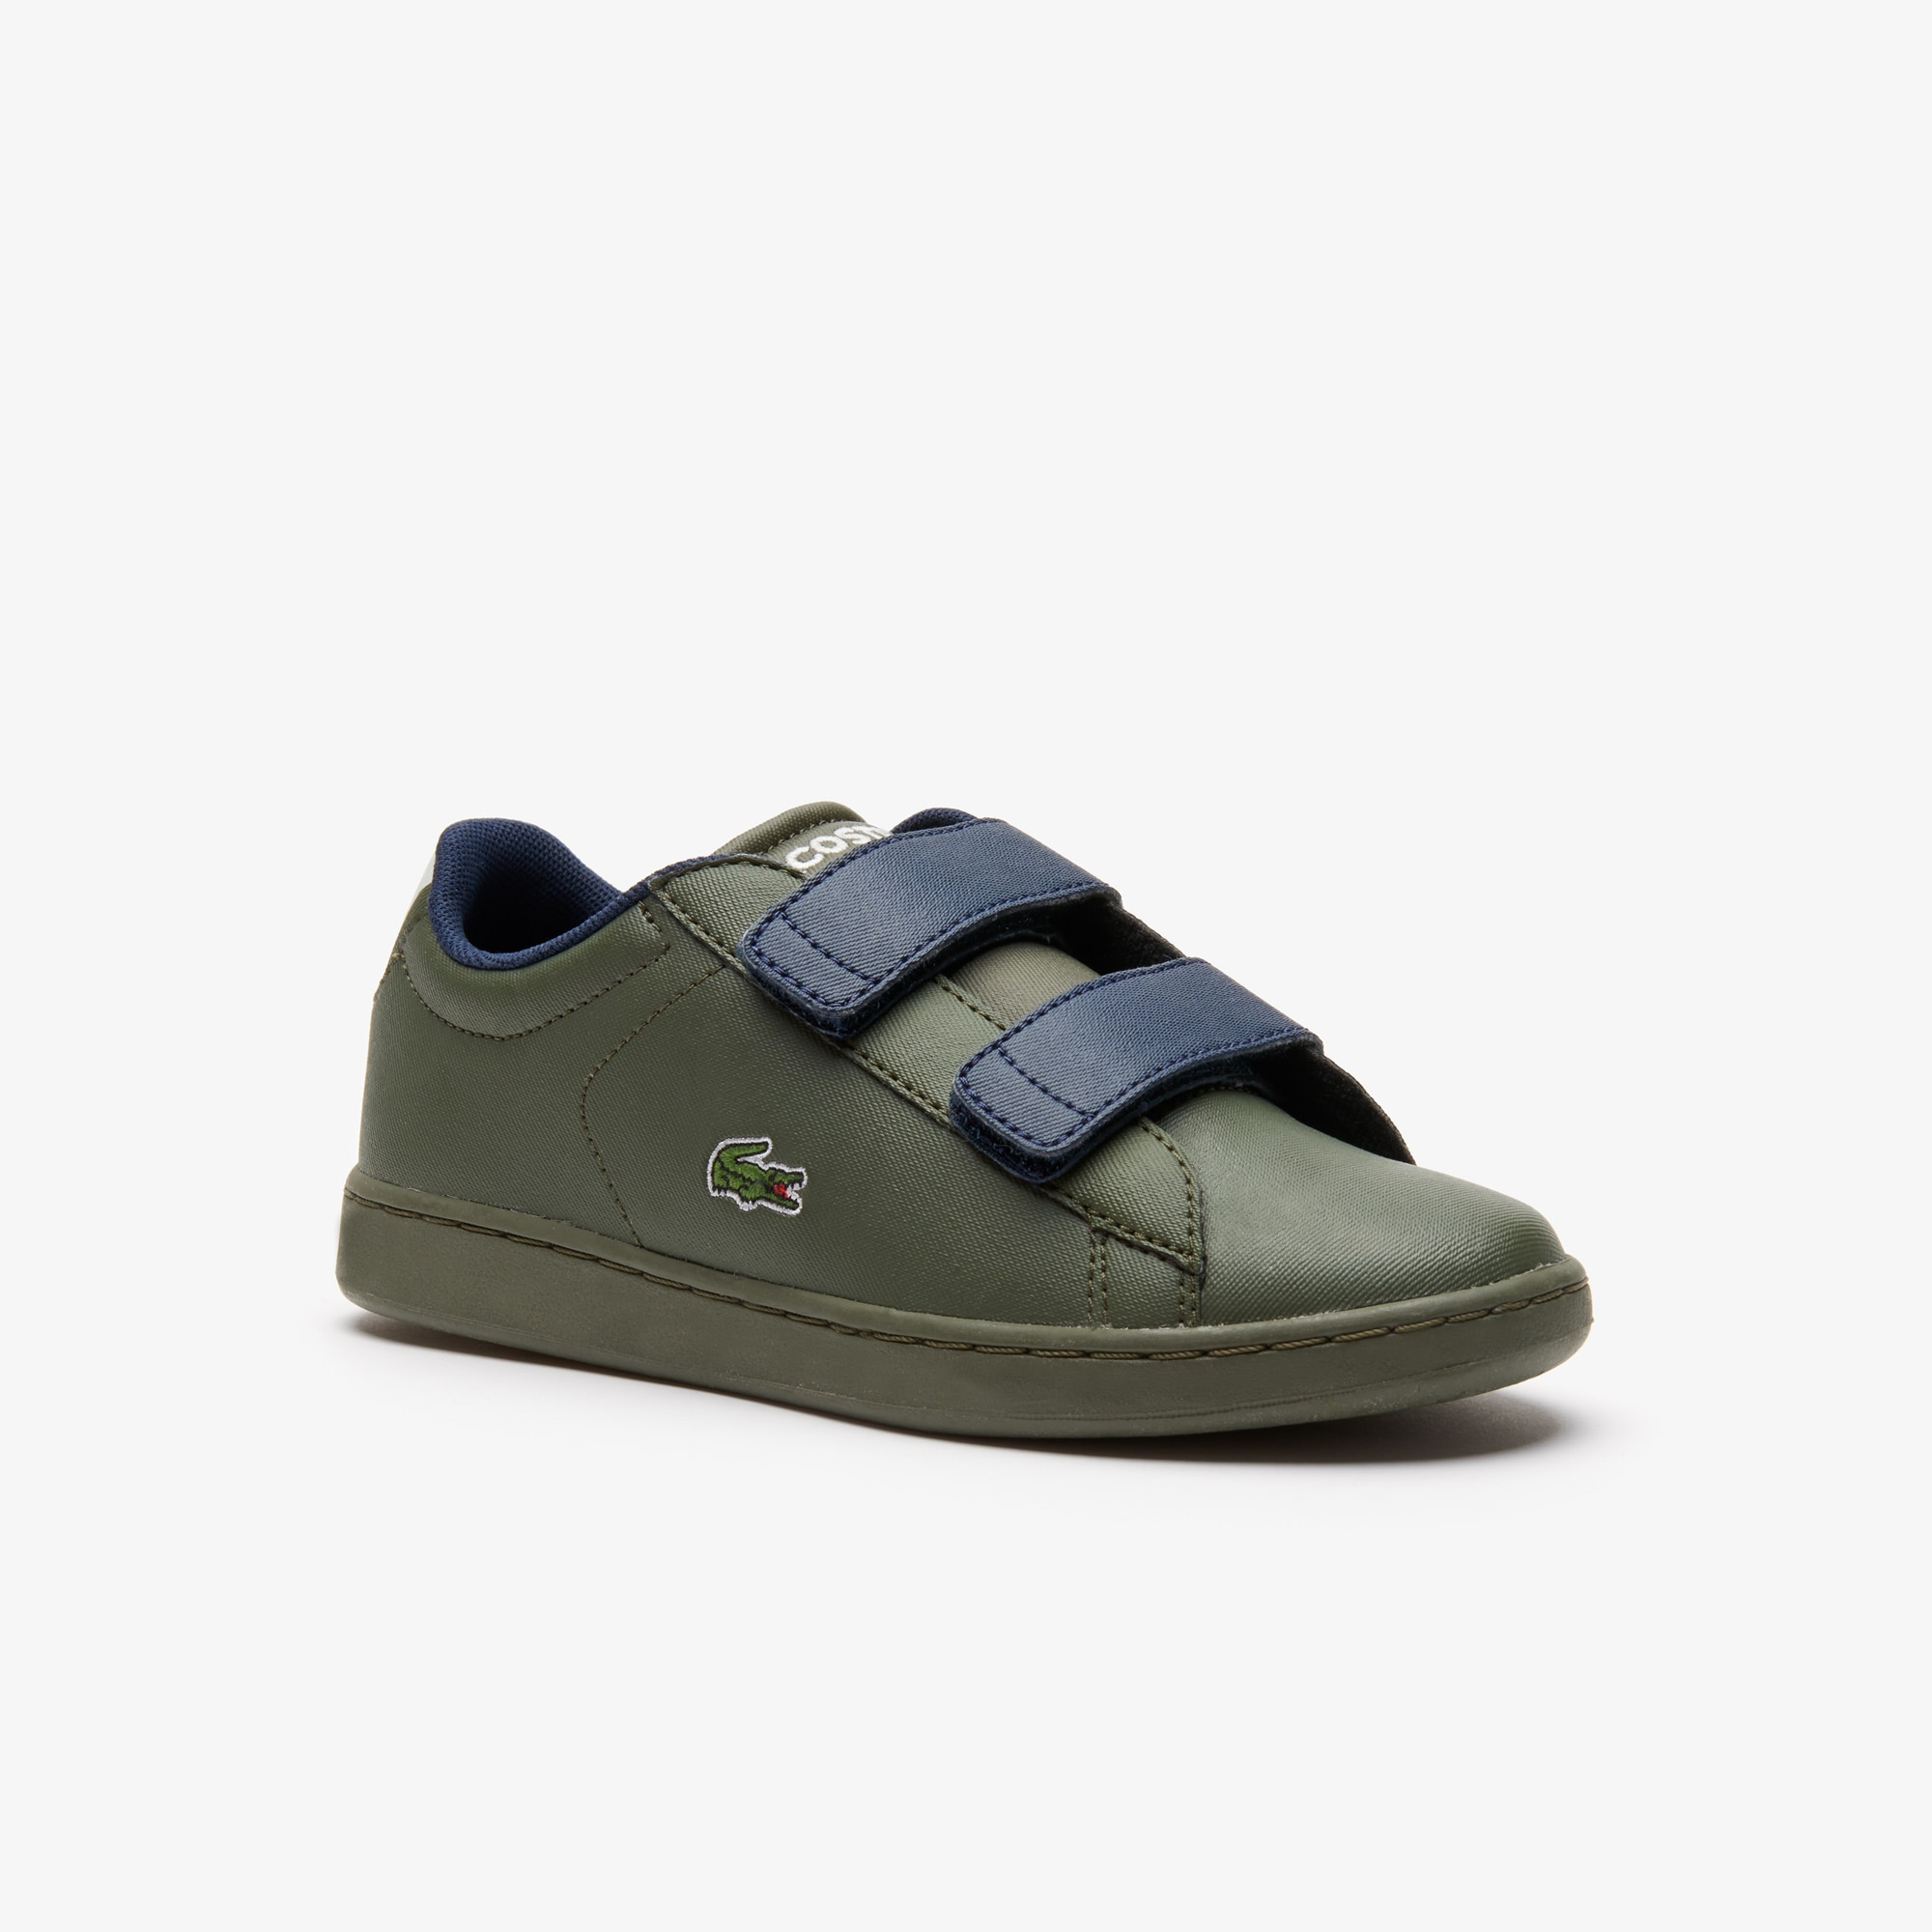 eccc2274a5f2c Sneakers Carnaby Evo Strap enfant en synthétique